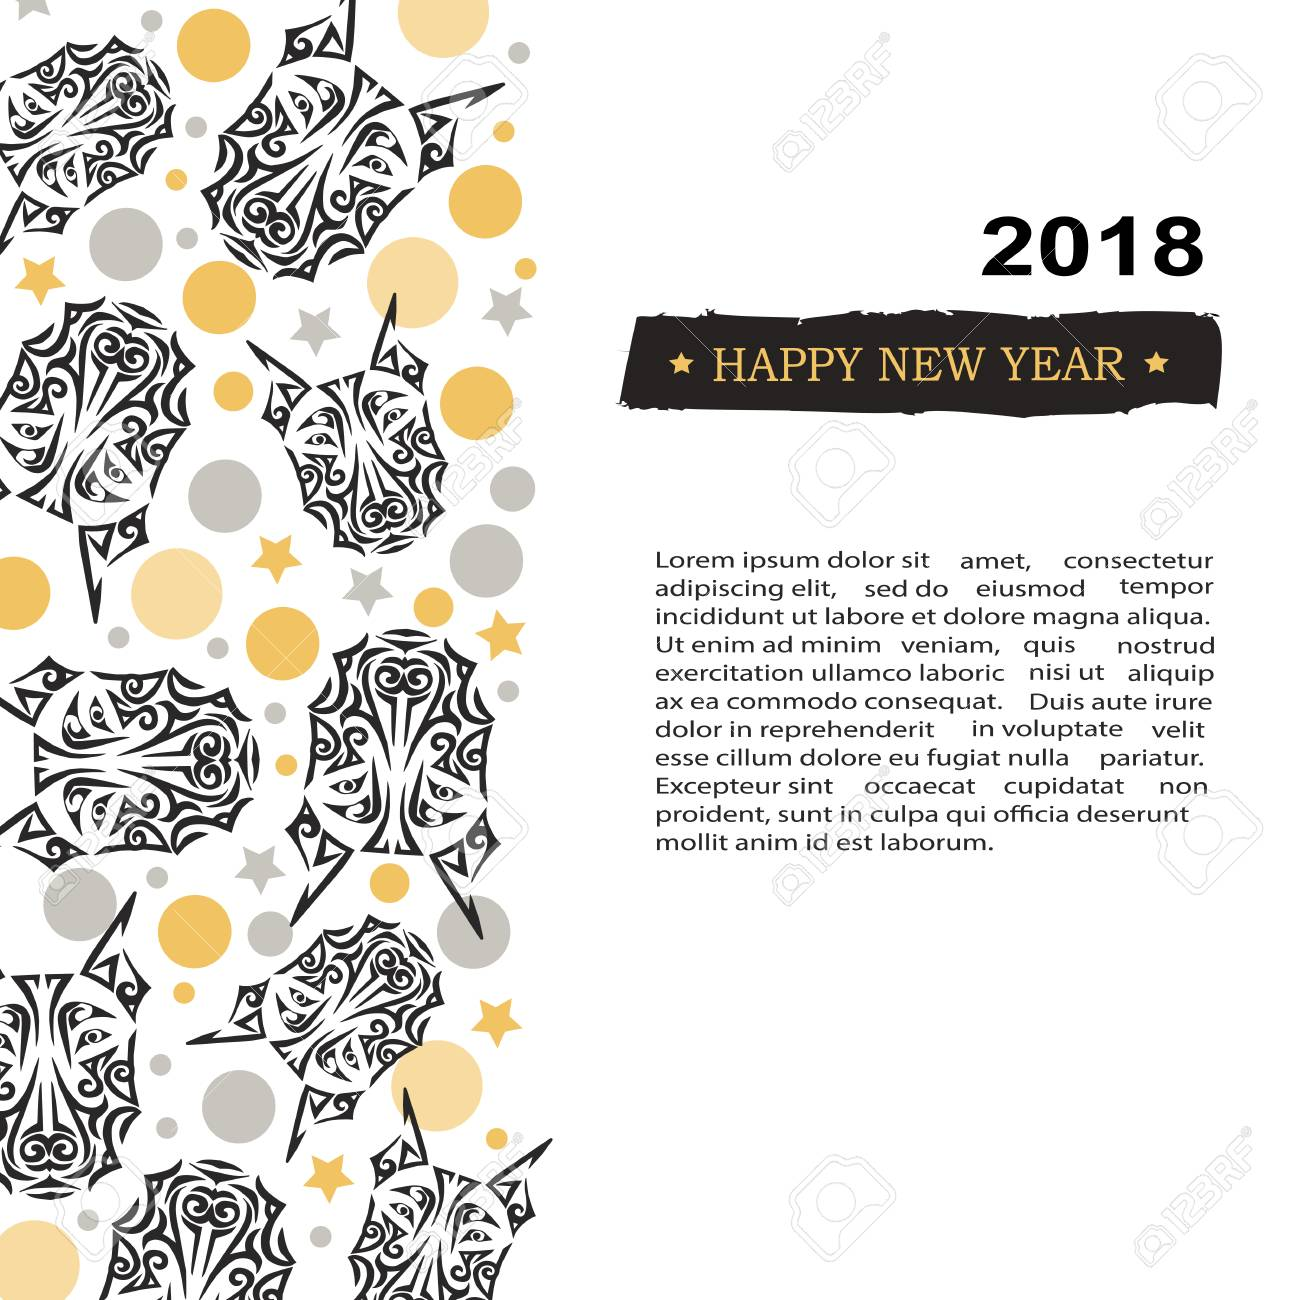 2018 new year card with black doberman dogs head stylized maori face tattoo template for